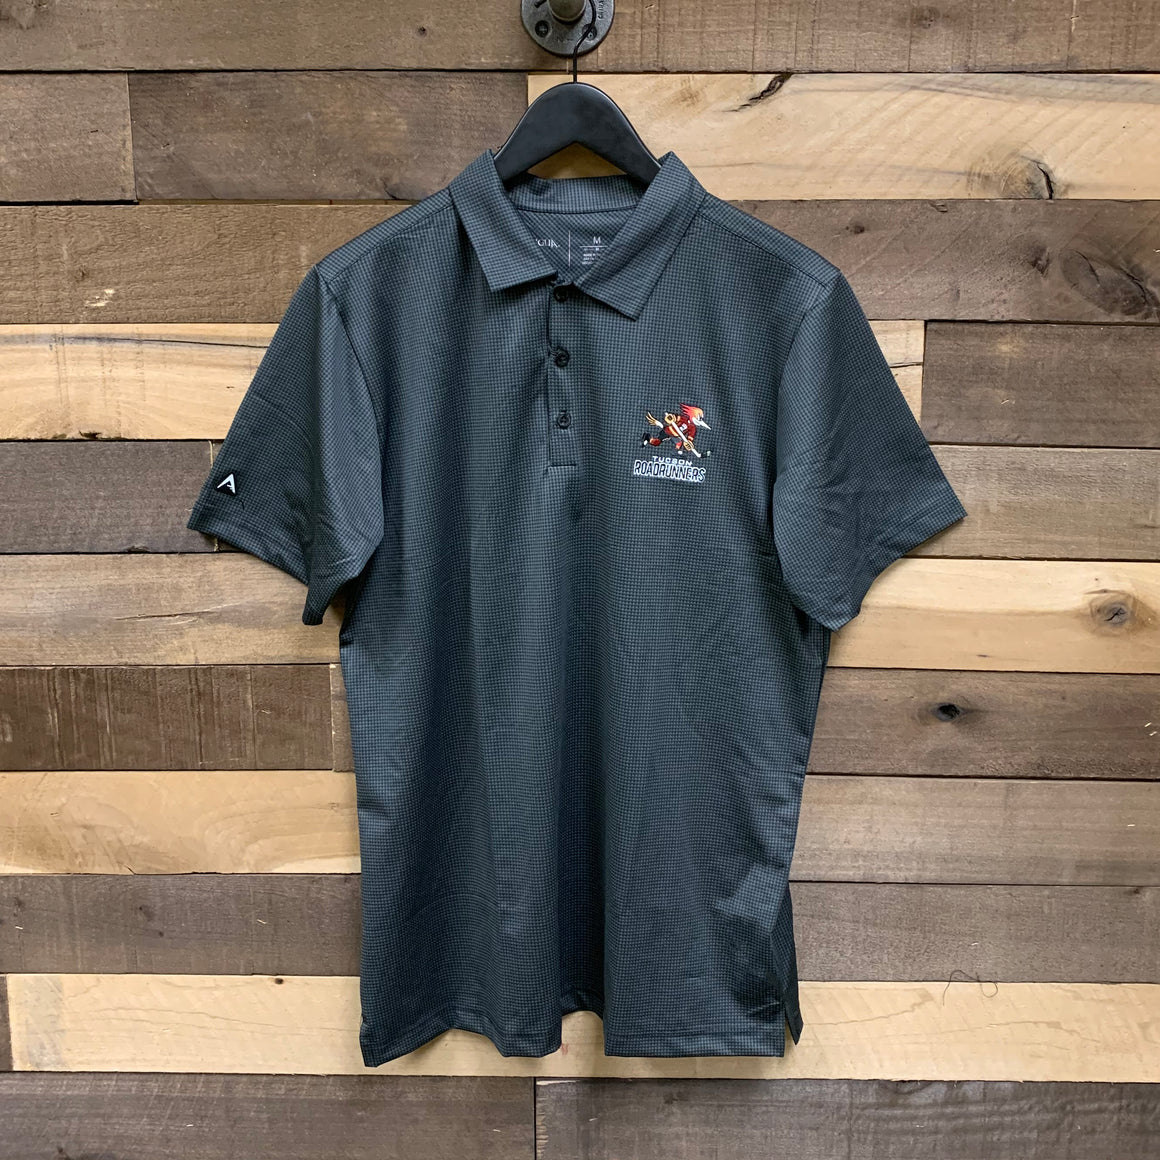 Tucson Roadrunners CCM Balance Full Mark Polo - Black